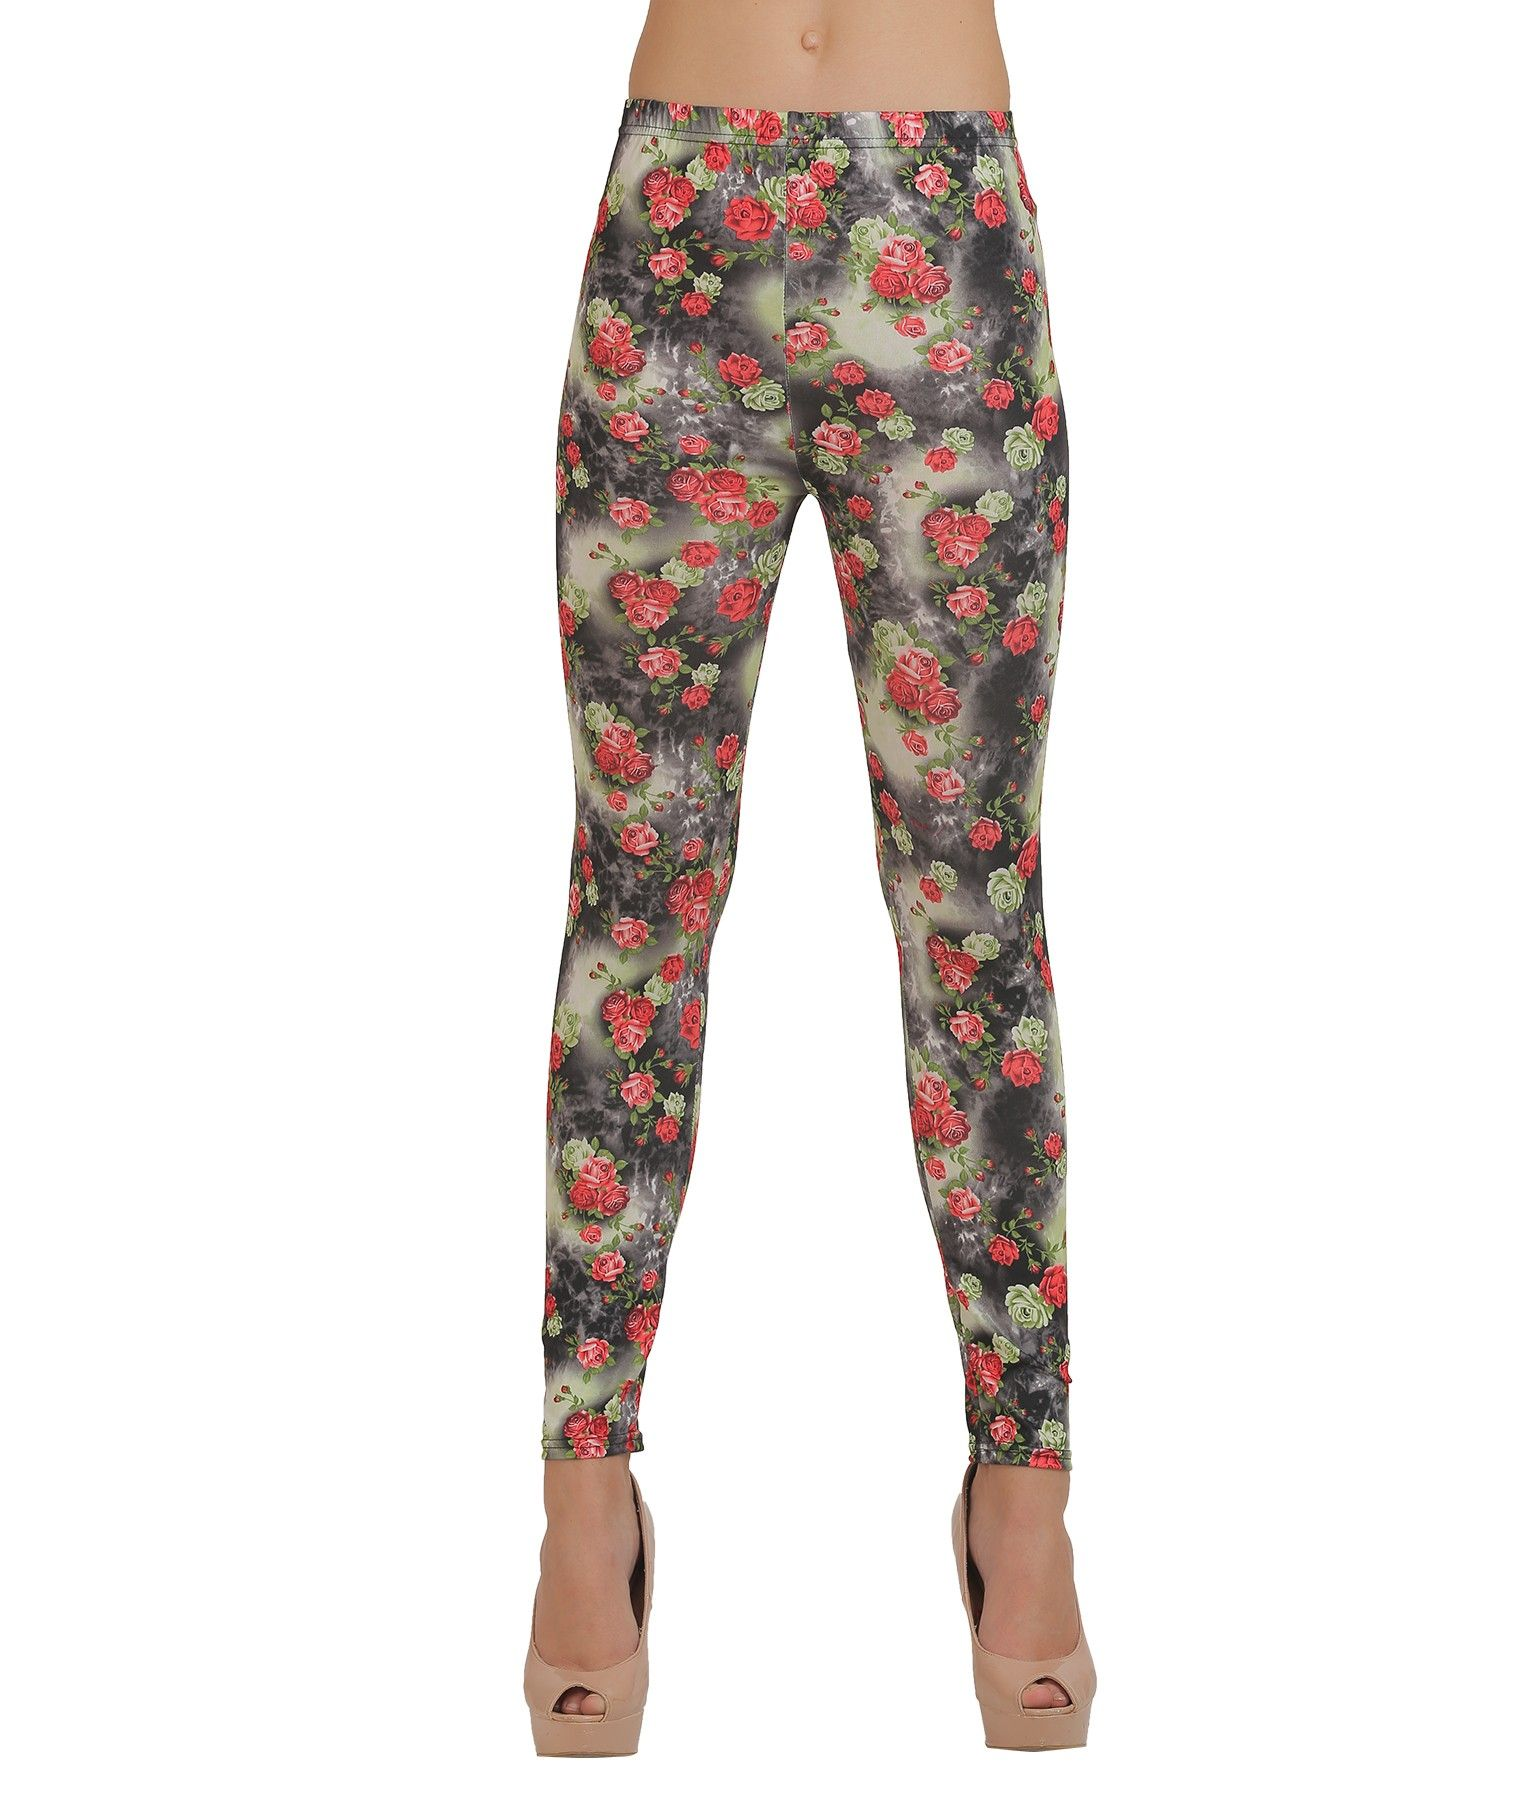 Multi in colour these leggings from tt pearl are a wardrobe staple